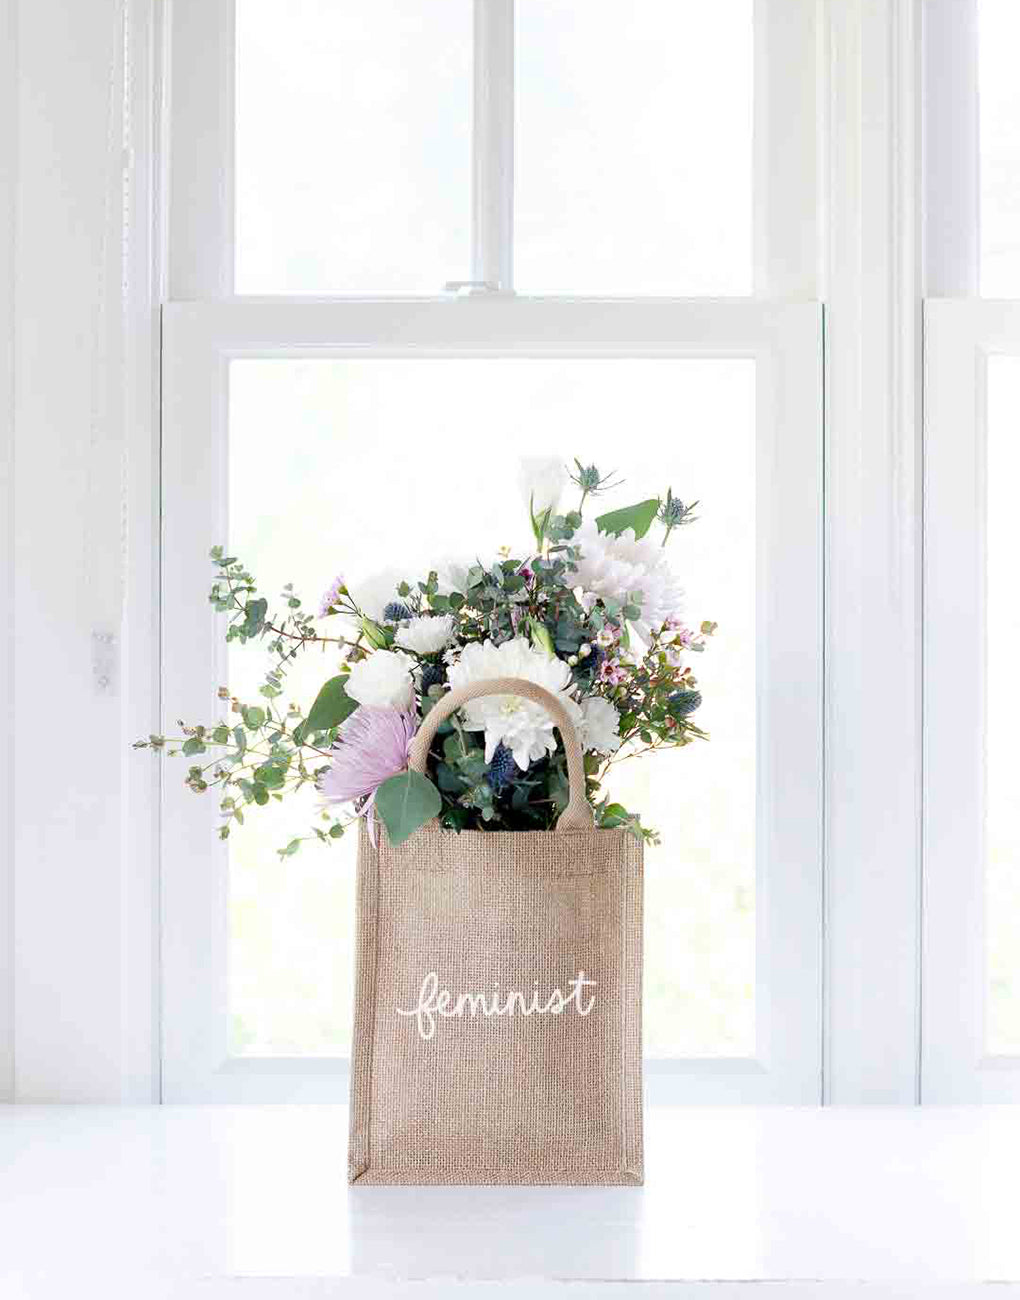 Small Feminist Reusable Gift Tote In White Font With Flowers Inside | The Little Market